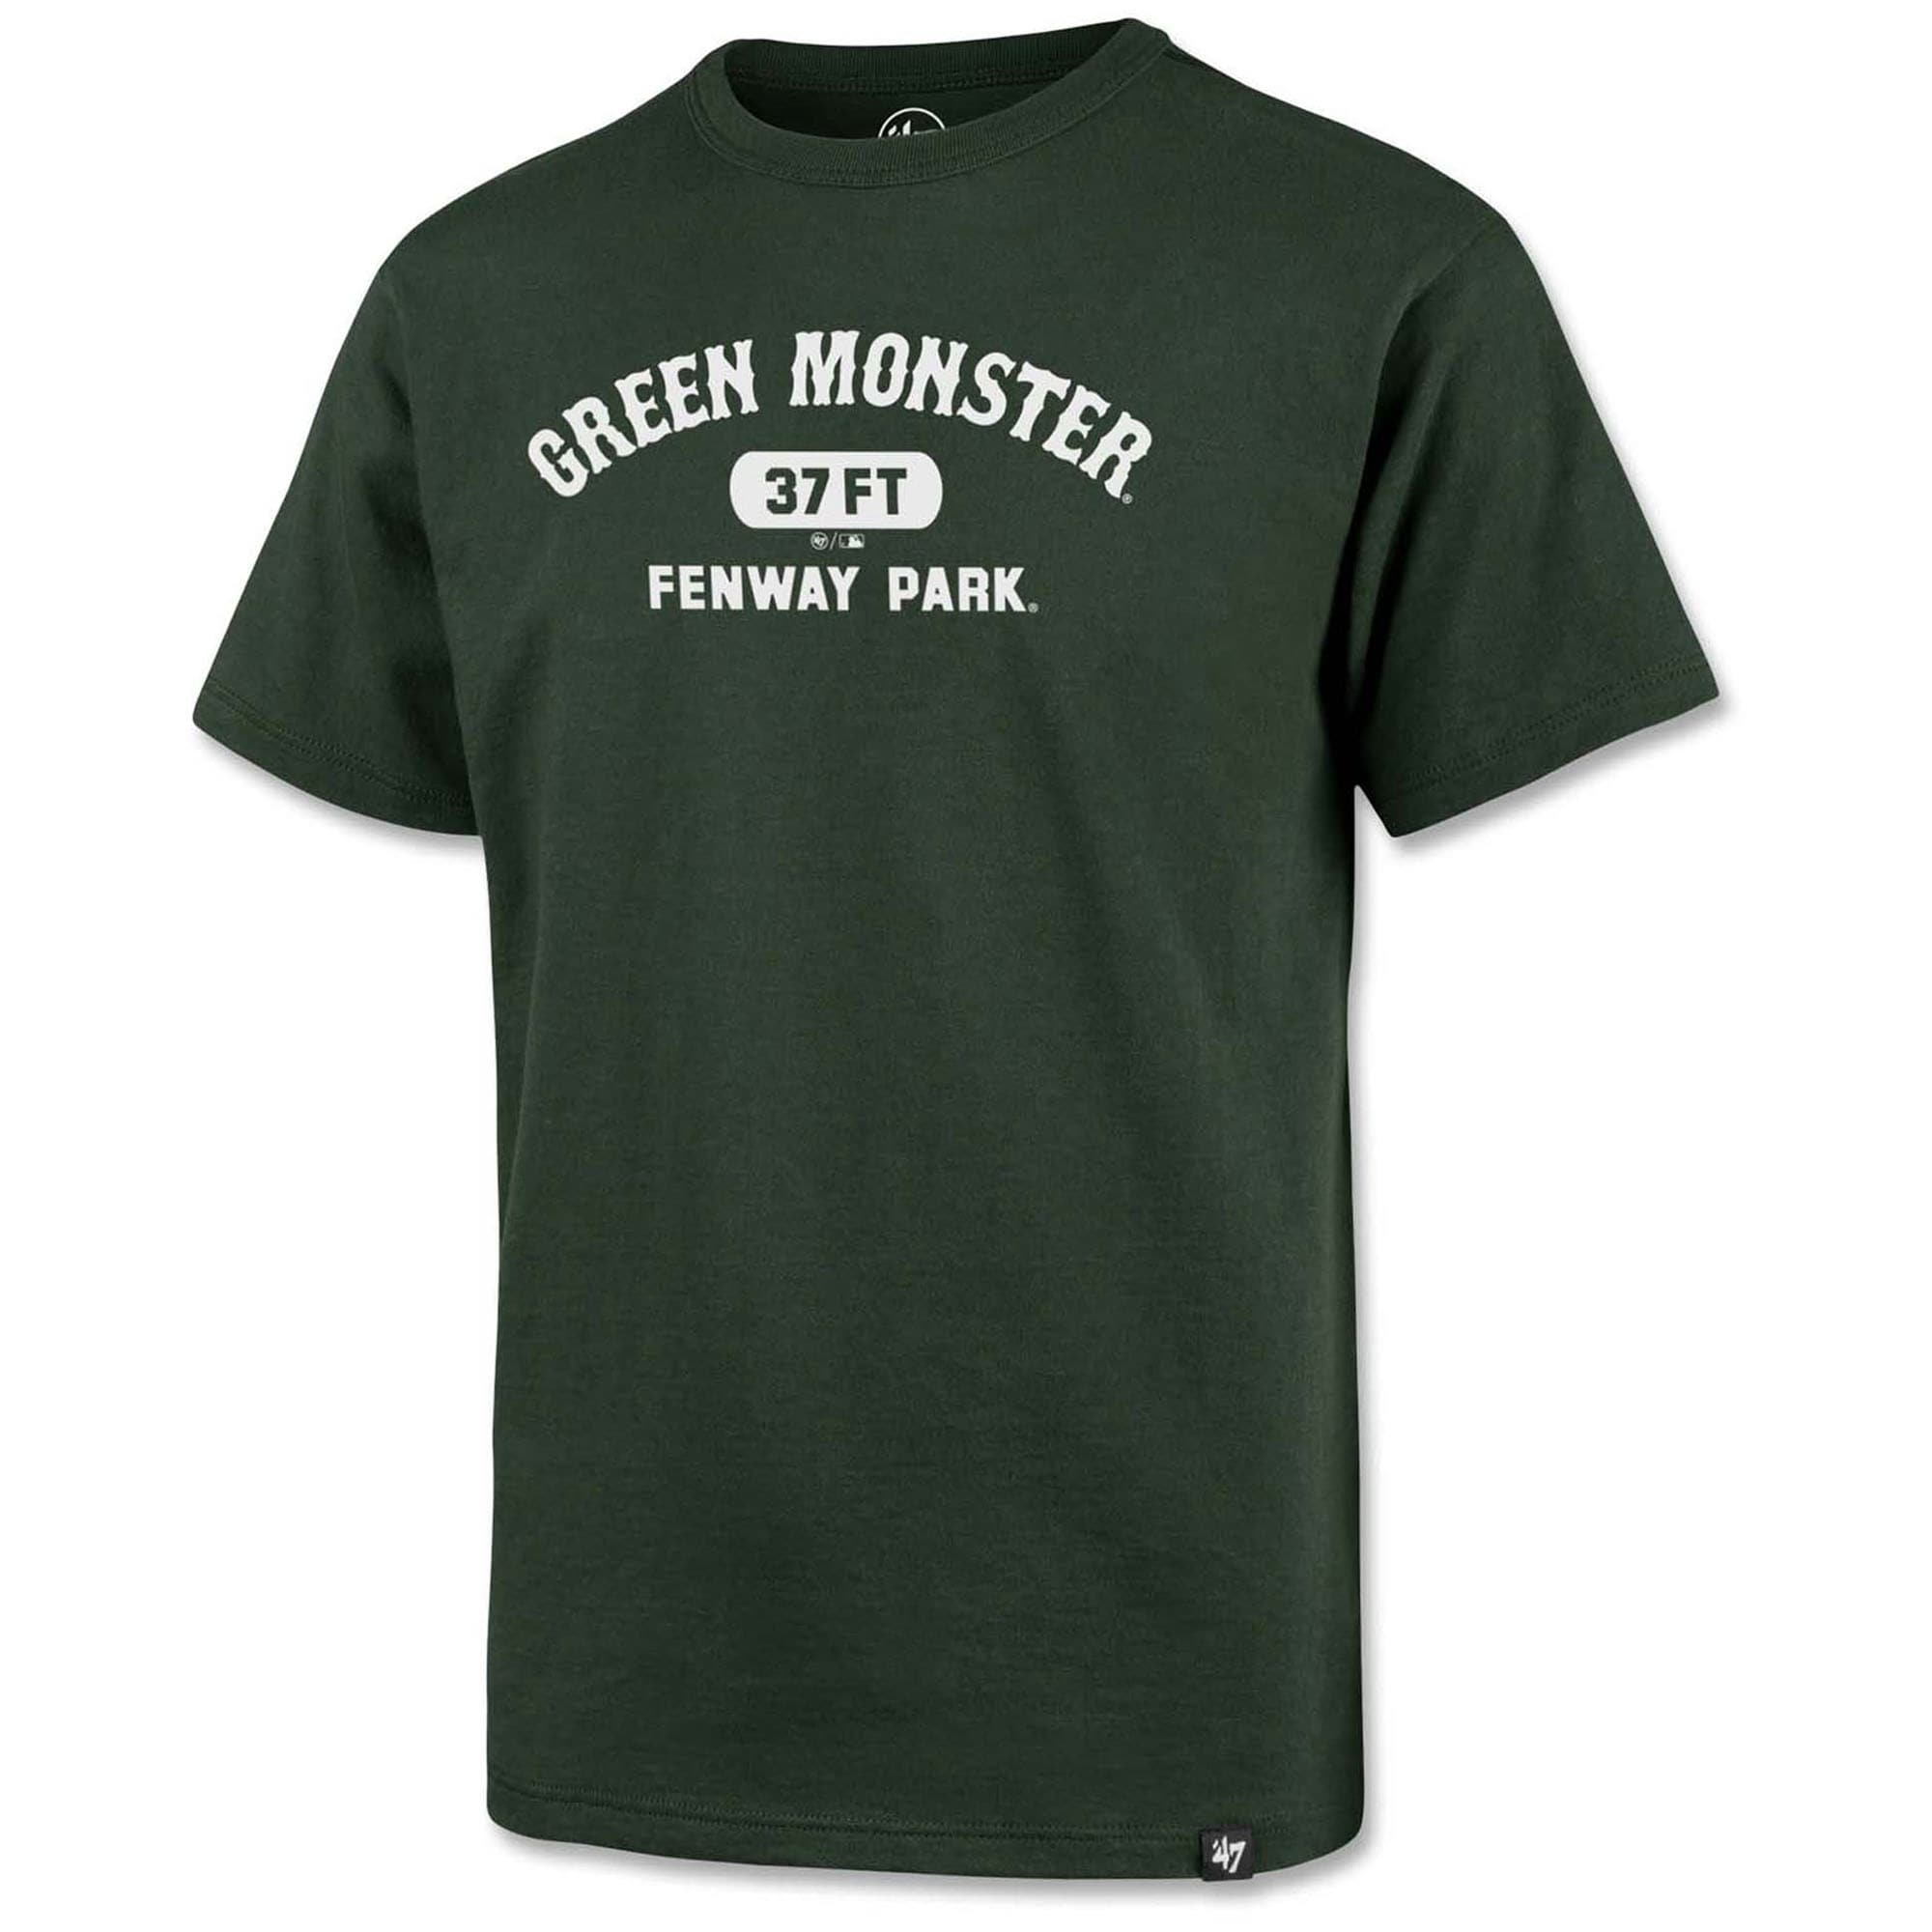 Boston Red Sox '47 Youth Fenway Park Green Monster Poly T-Shirt - Hunter Green